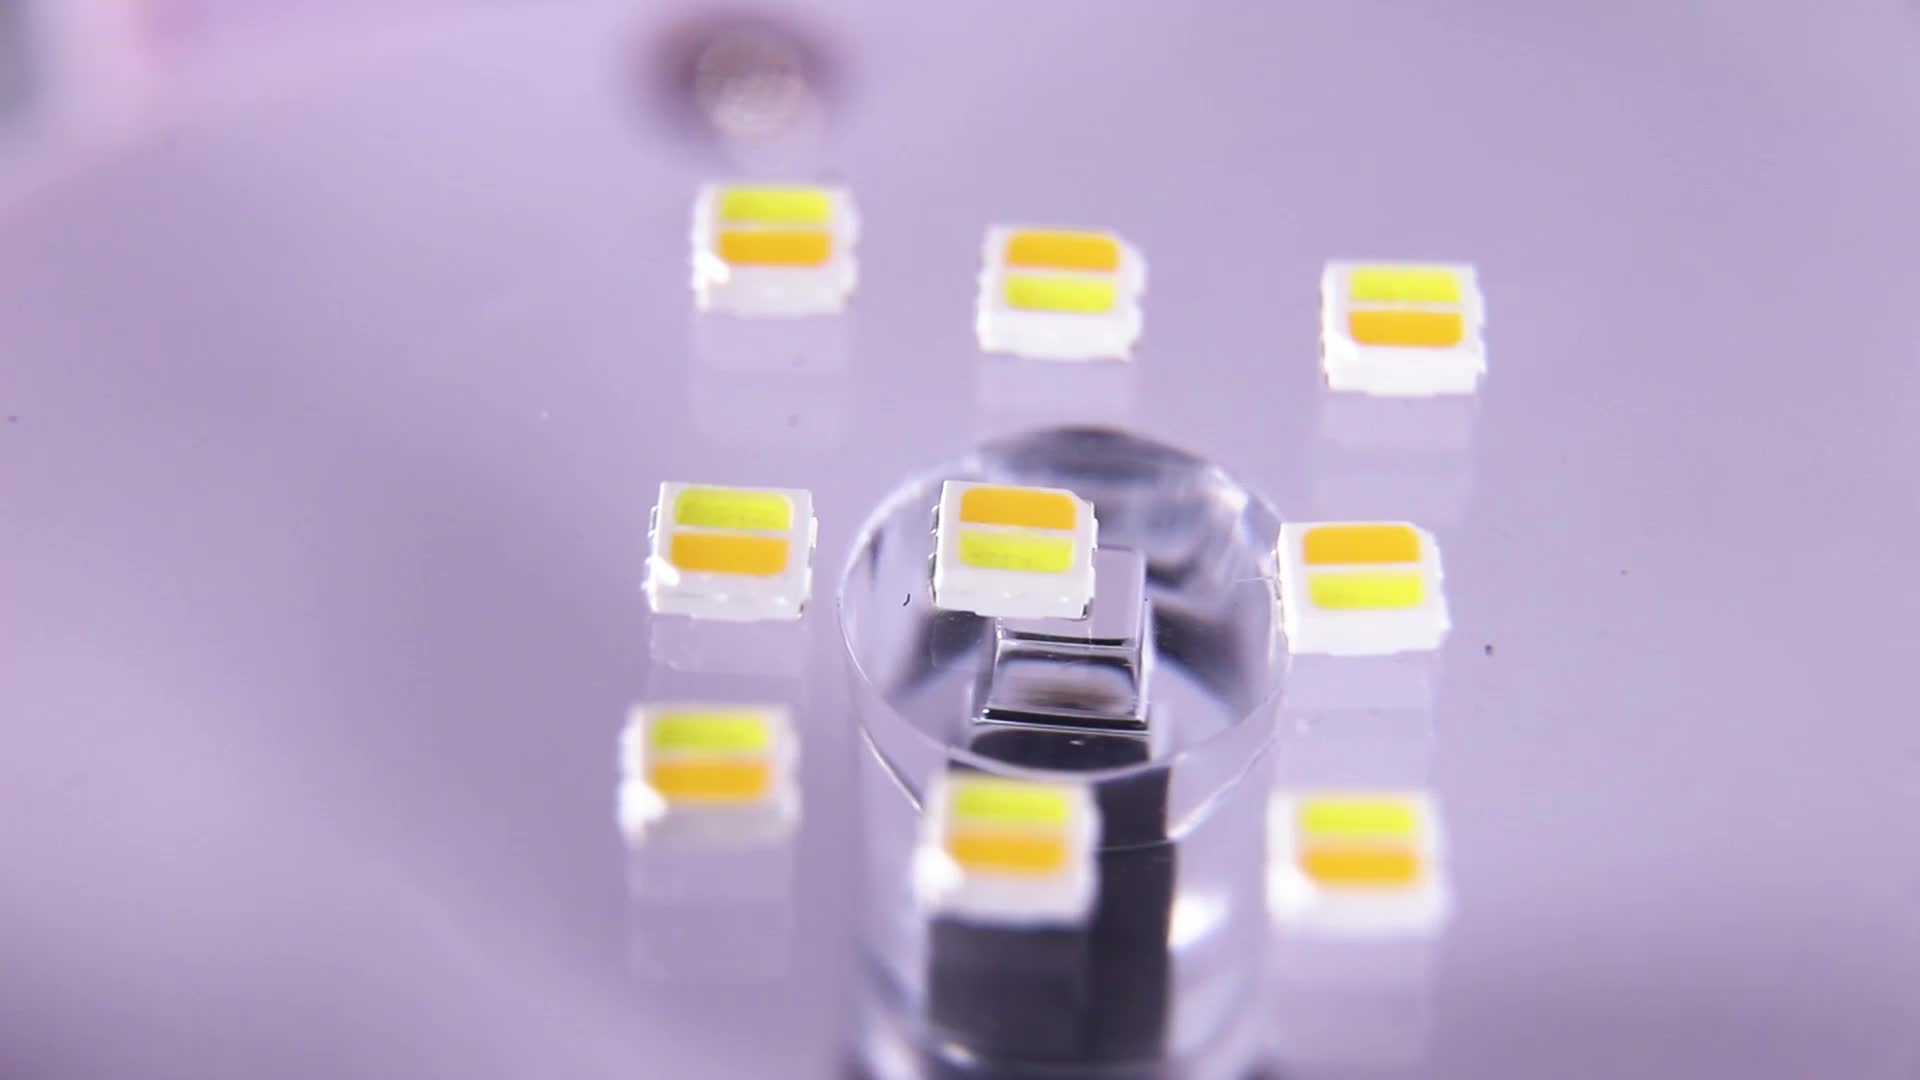 High power 0.5w 5074 5051 5054 5050 1w 1.5w 3w smd rgb led chip